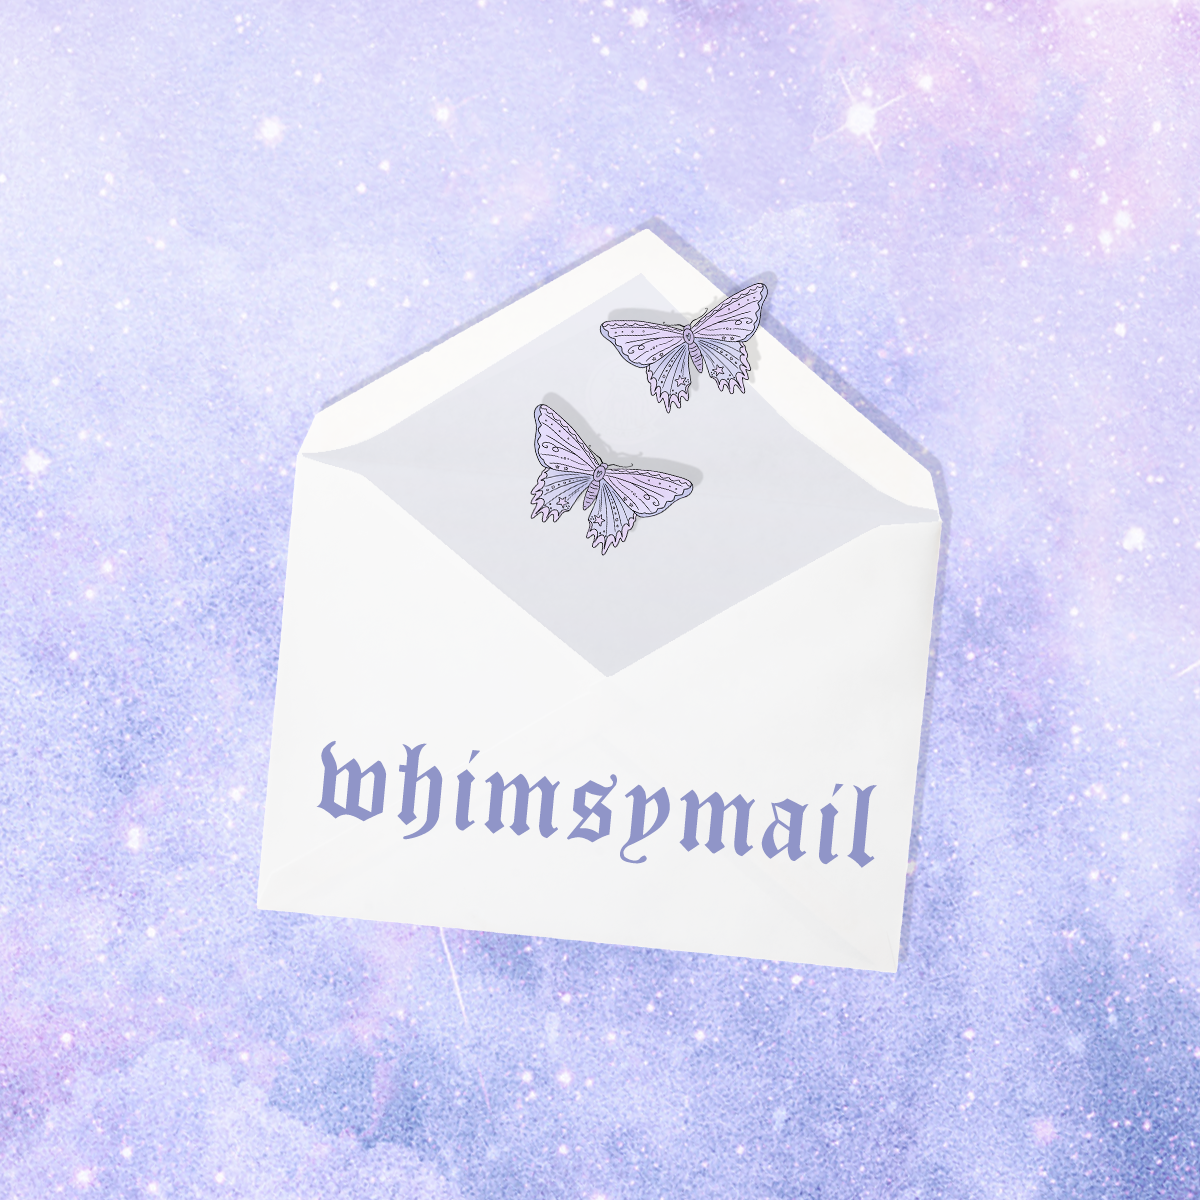 whimsymail-sticker-subscription-laceandwhimsy.png